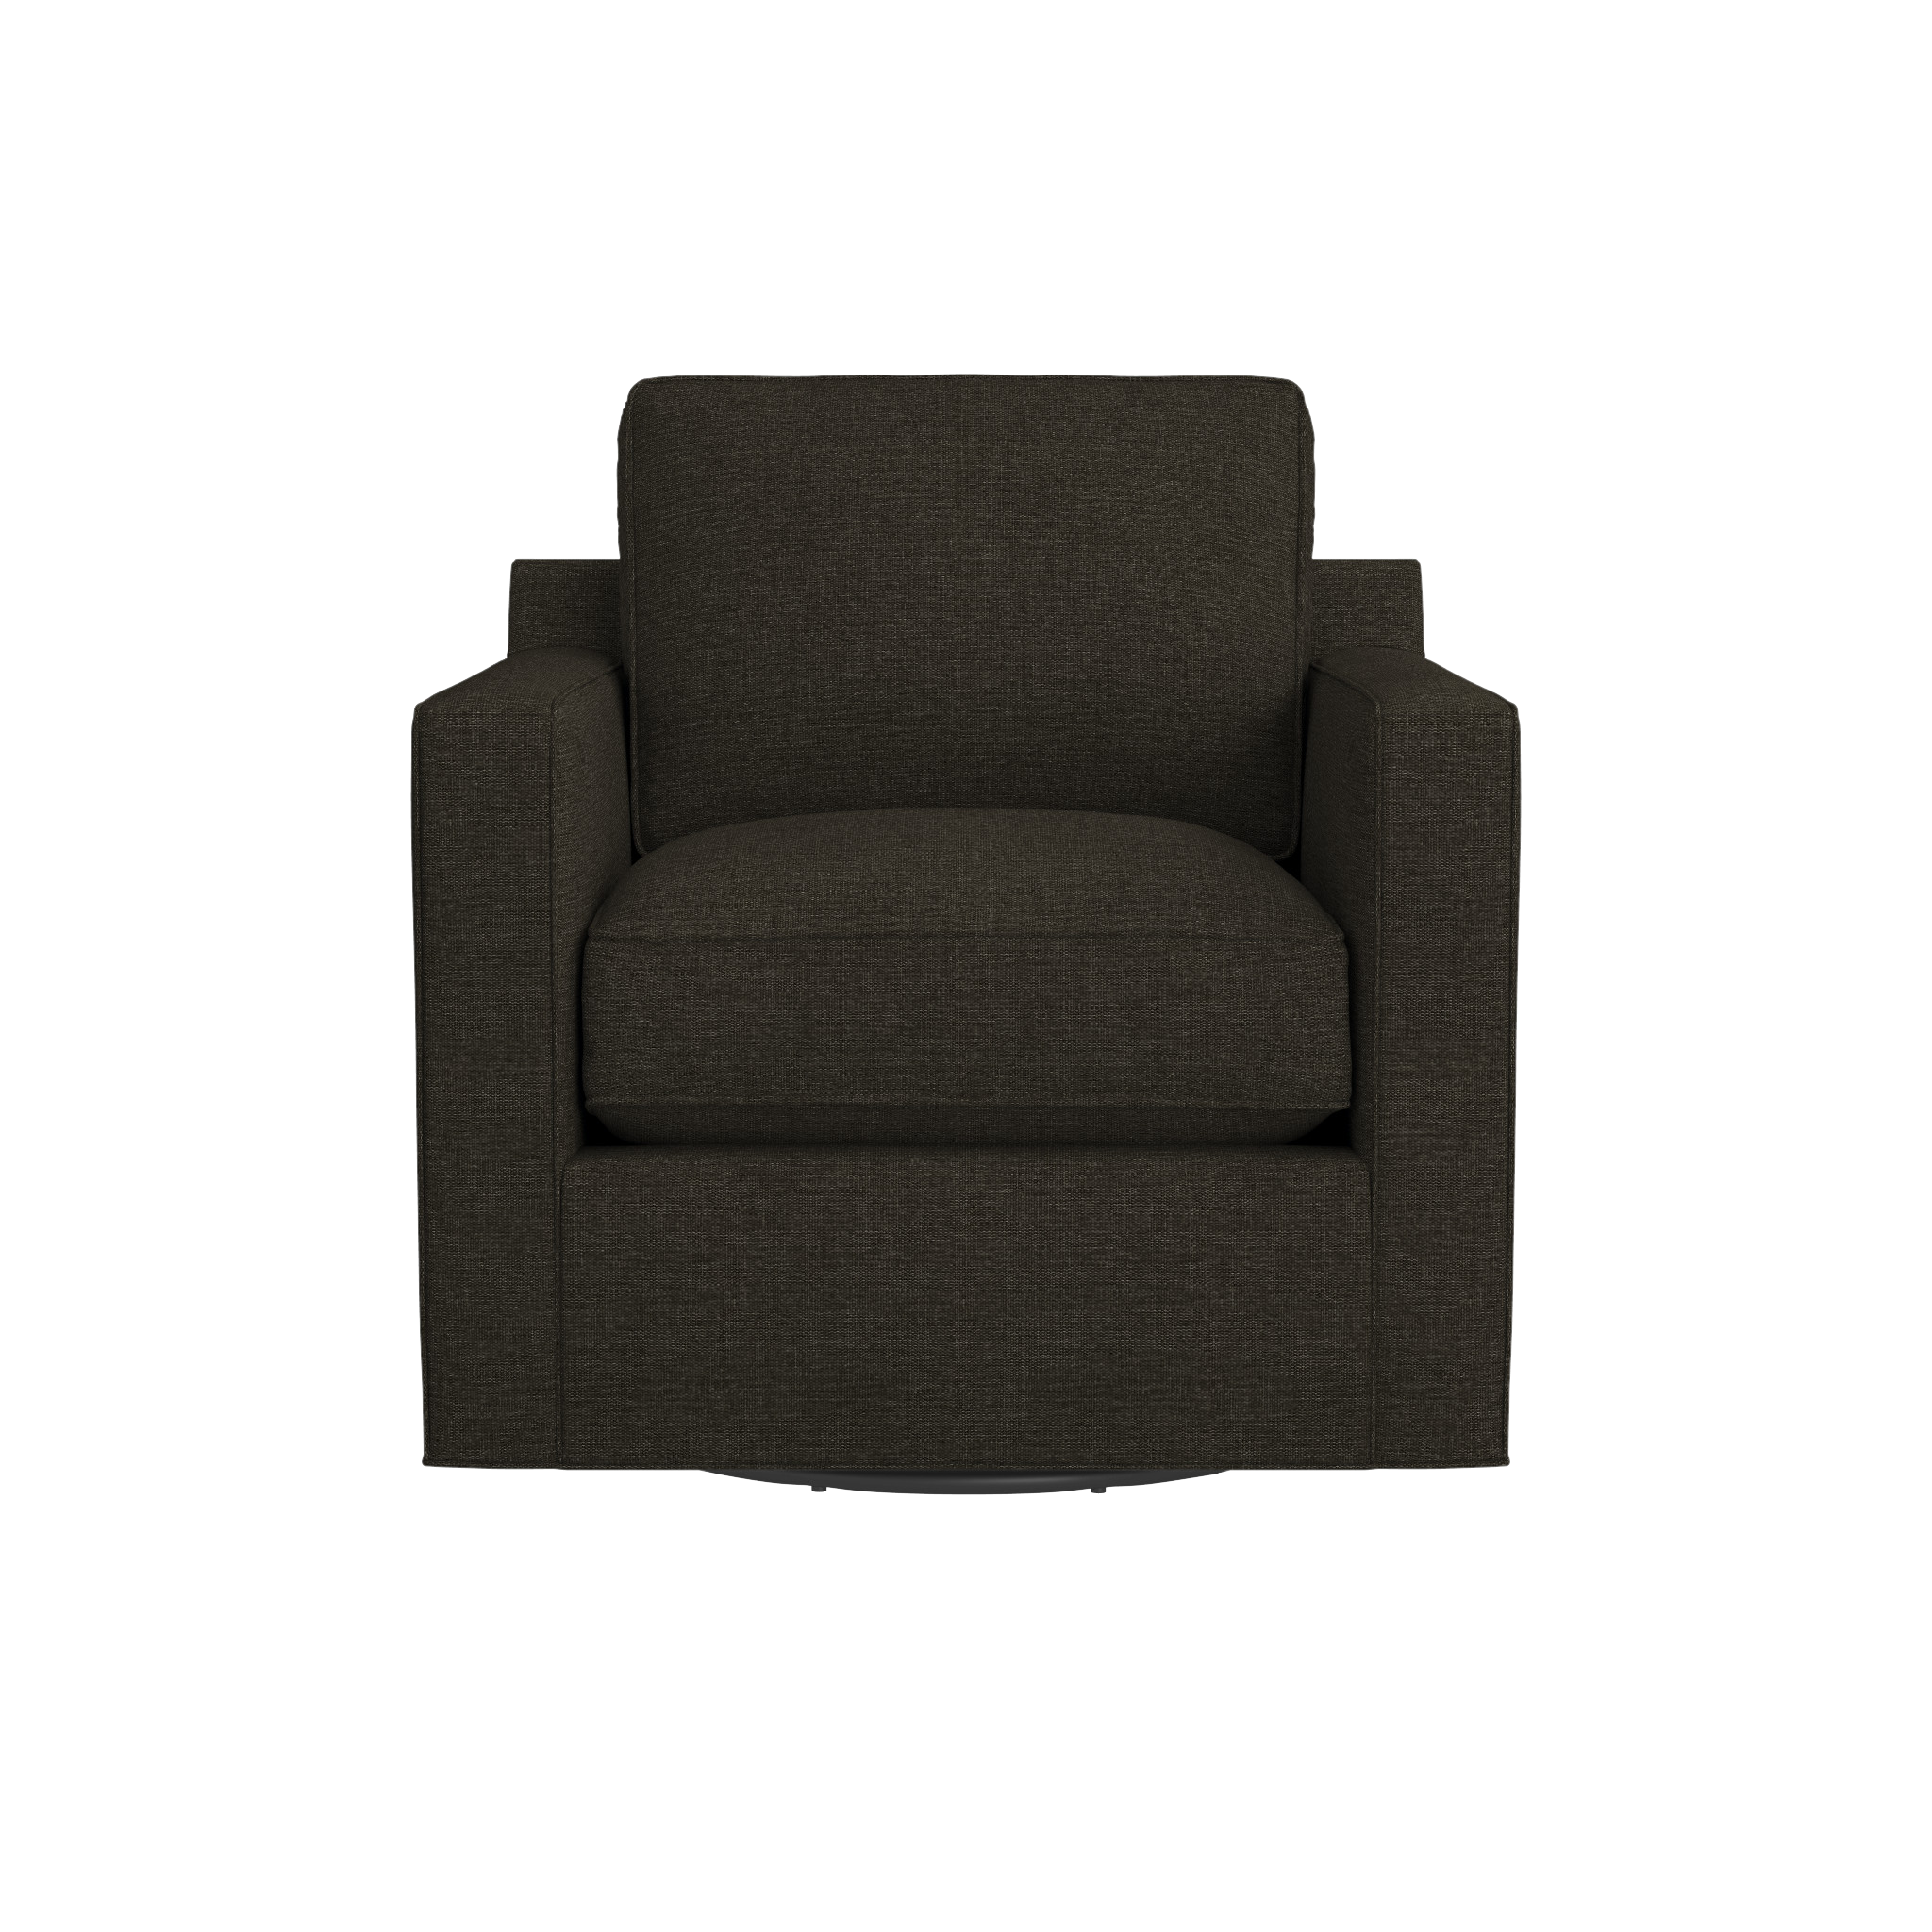 Davis Swivel Chair Crate and Barrel Leather dining